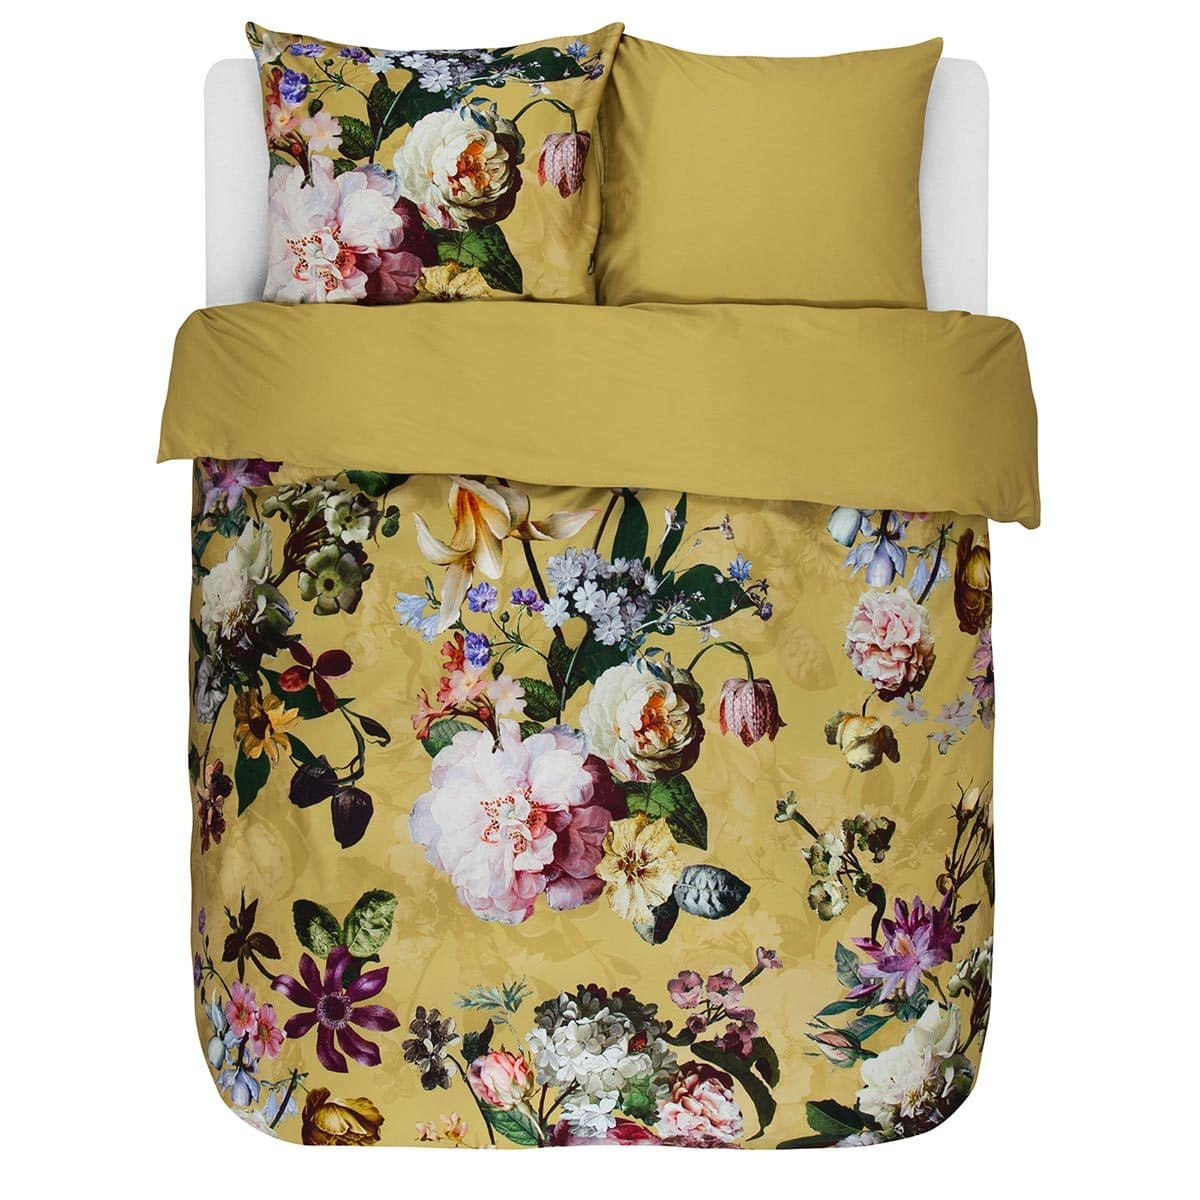 essenza mako satin bettw sche fleur golden yellow g nstig online kaufen bei bettwaren shop. Black Bedroom Furniture Sets. Home Design Ideas